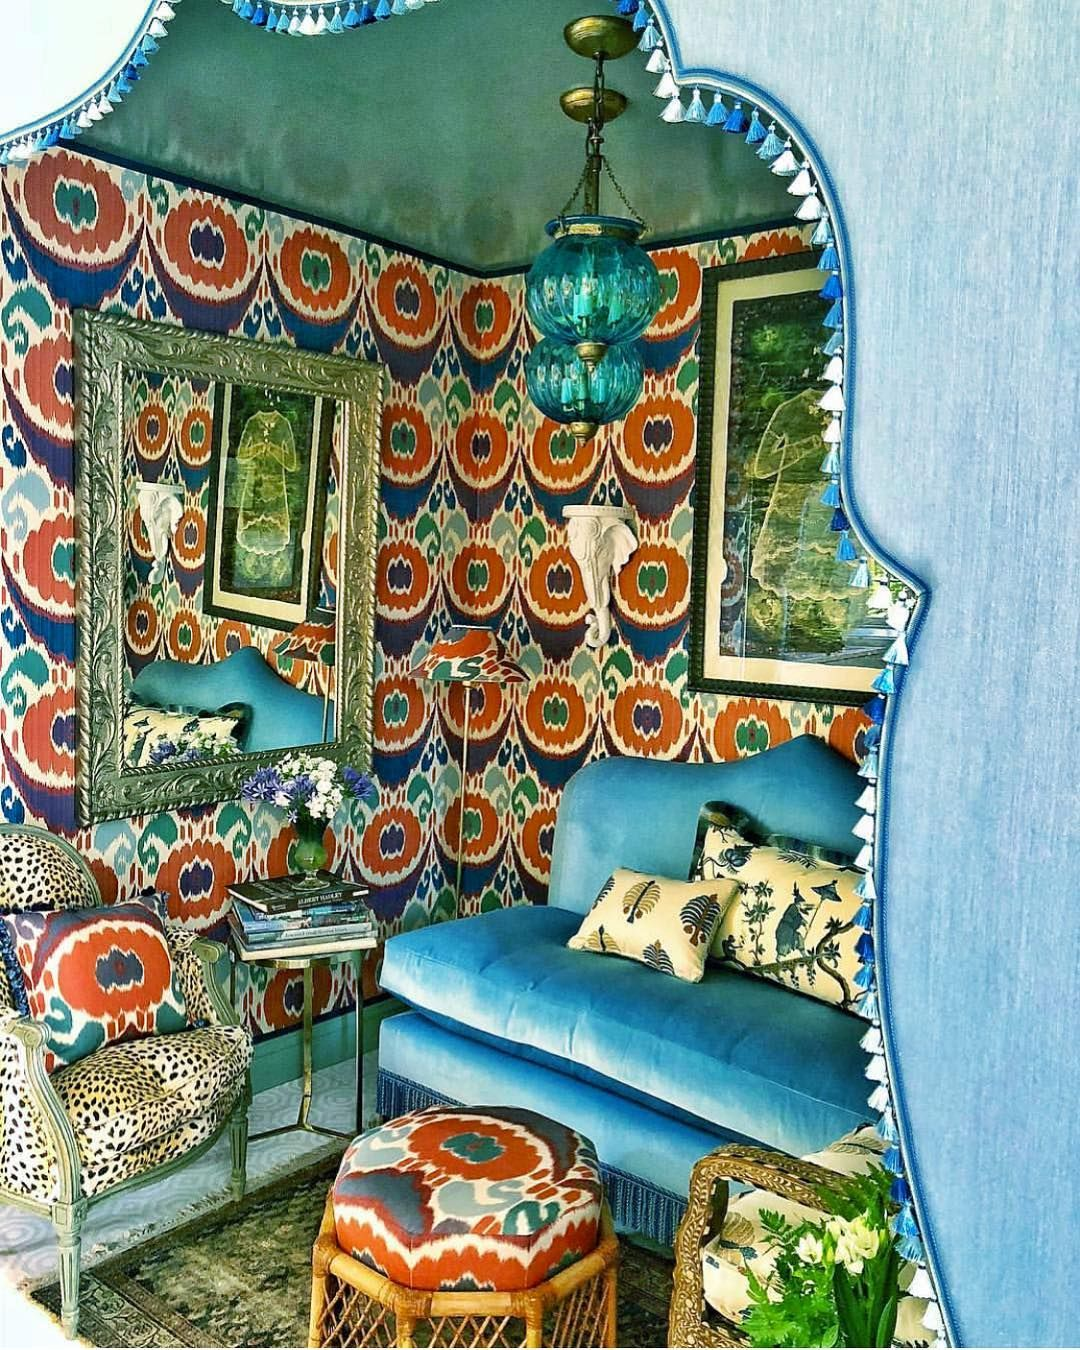 Bohemian Home Photo Via La Maison Pierre Frey On Instagram Amazing Room At Roomswithaviewsouthport By Pretty Room Bohemian Interior Design Bohemian House